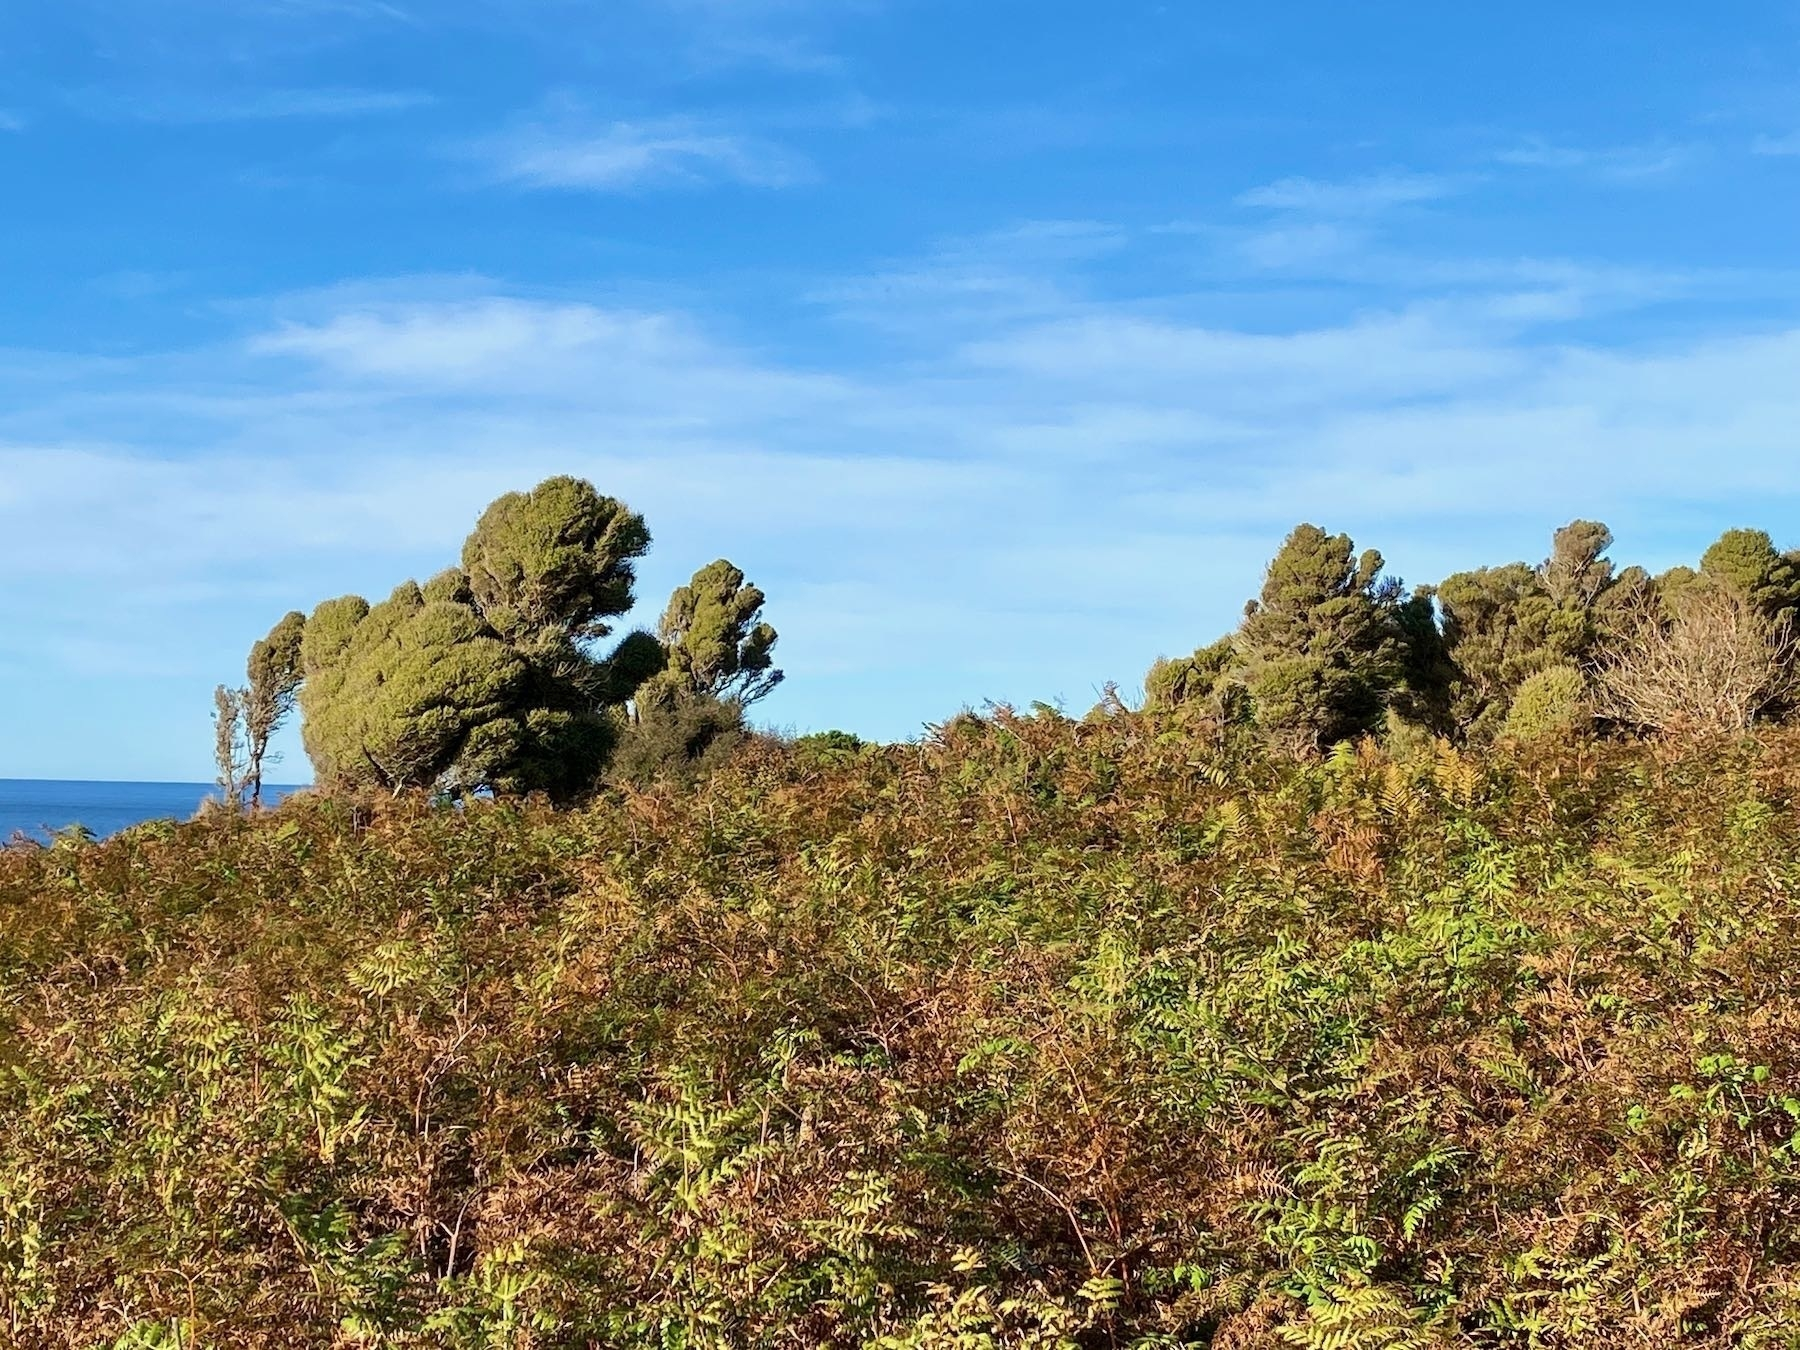 Wind-shaped trees and bracken.